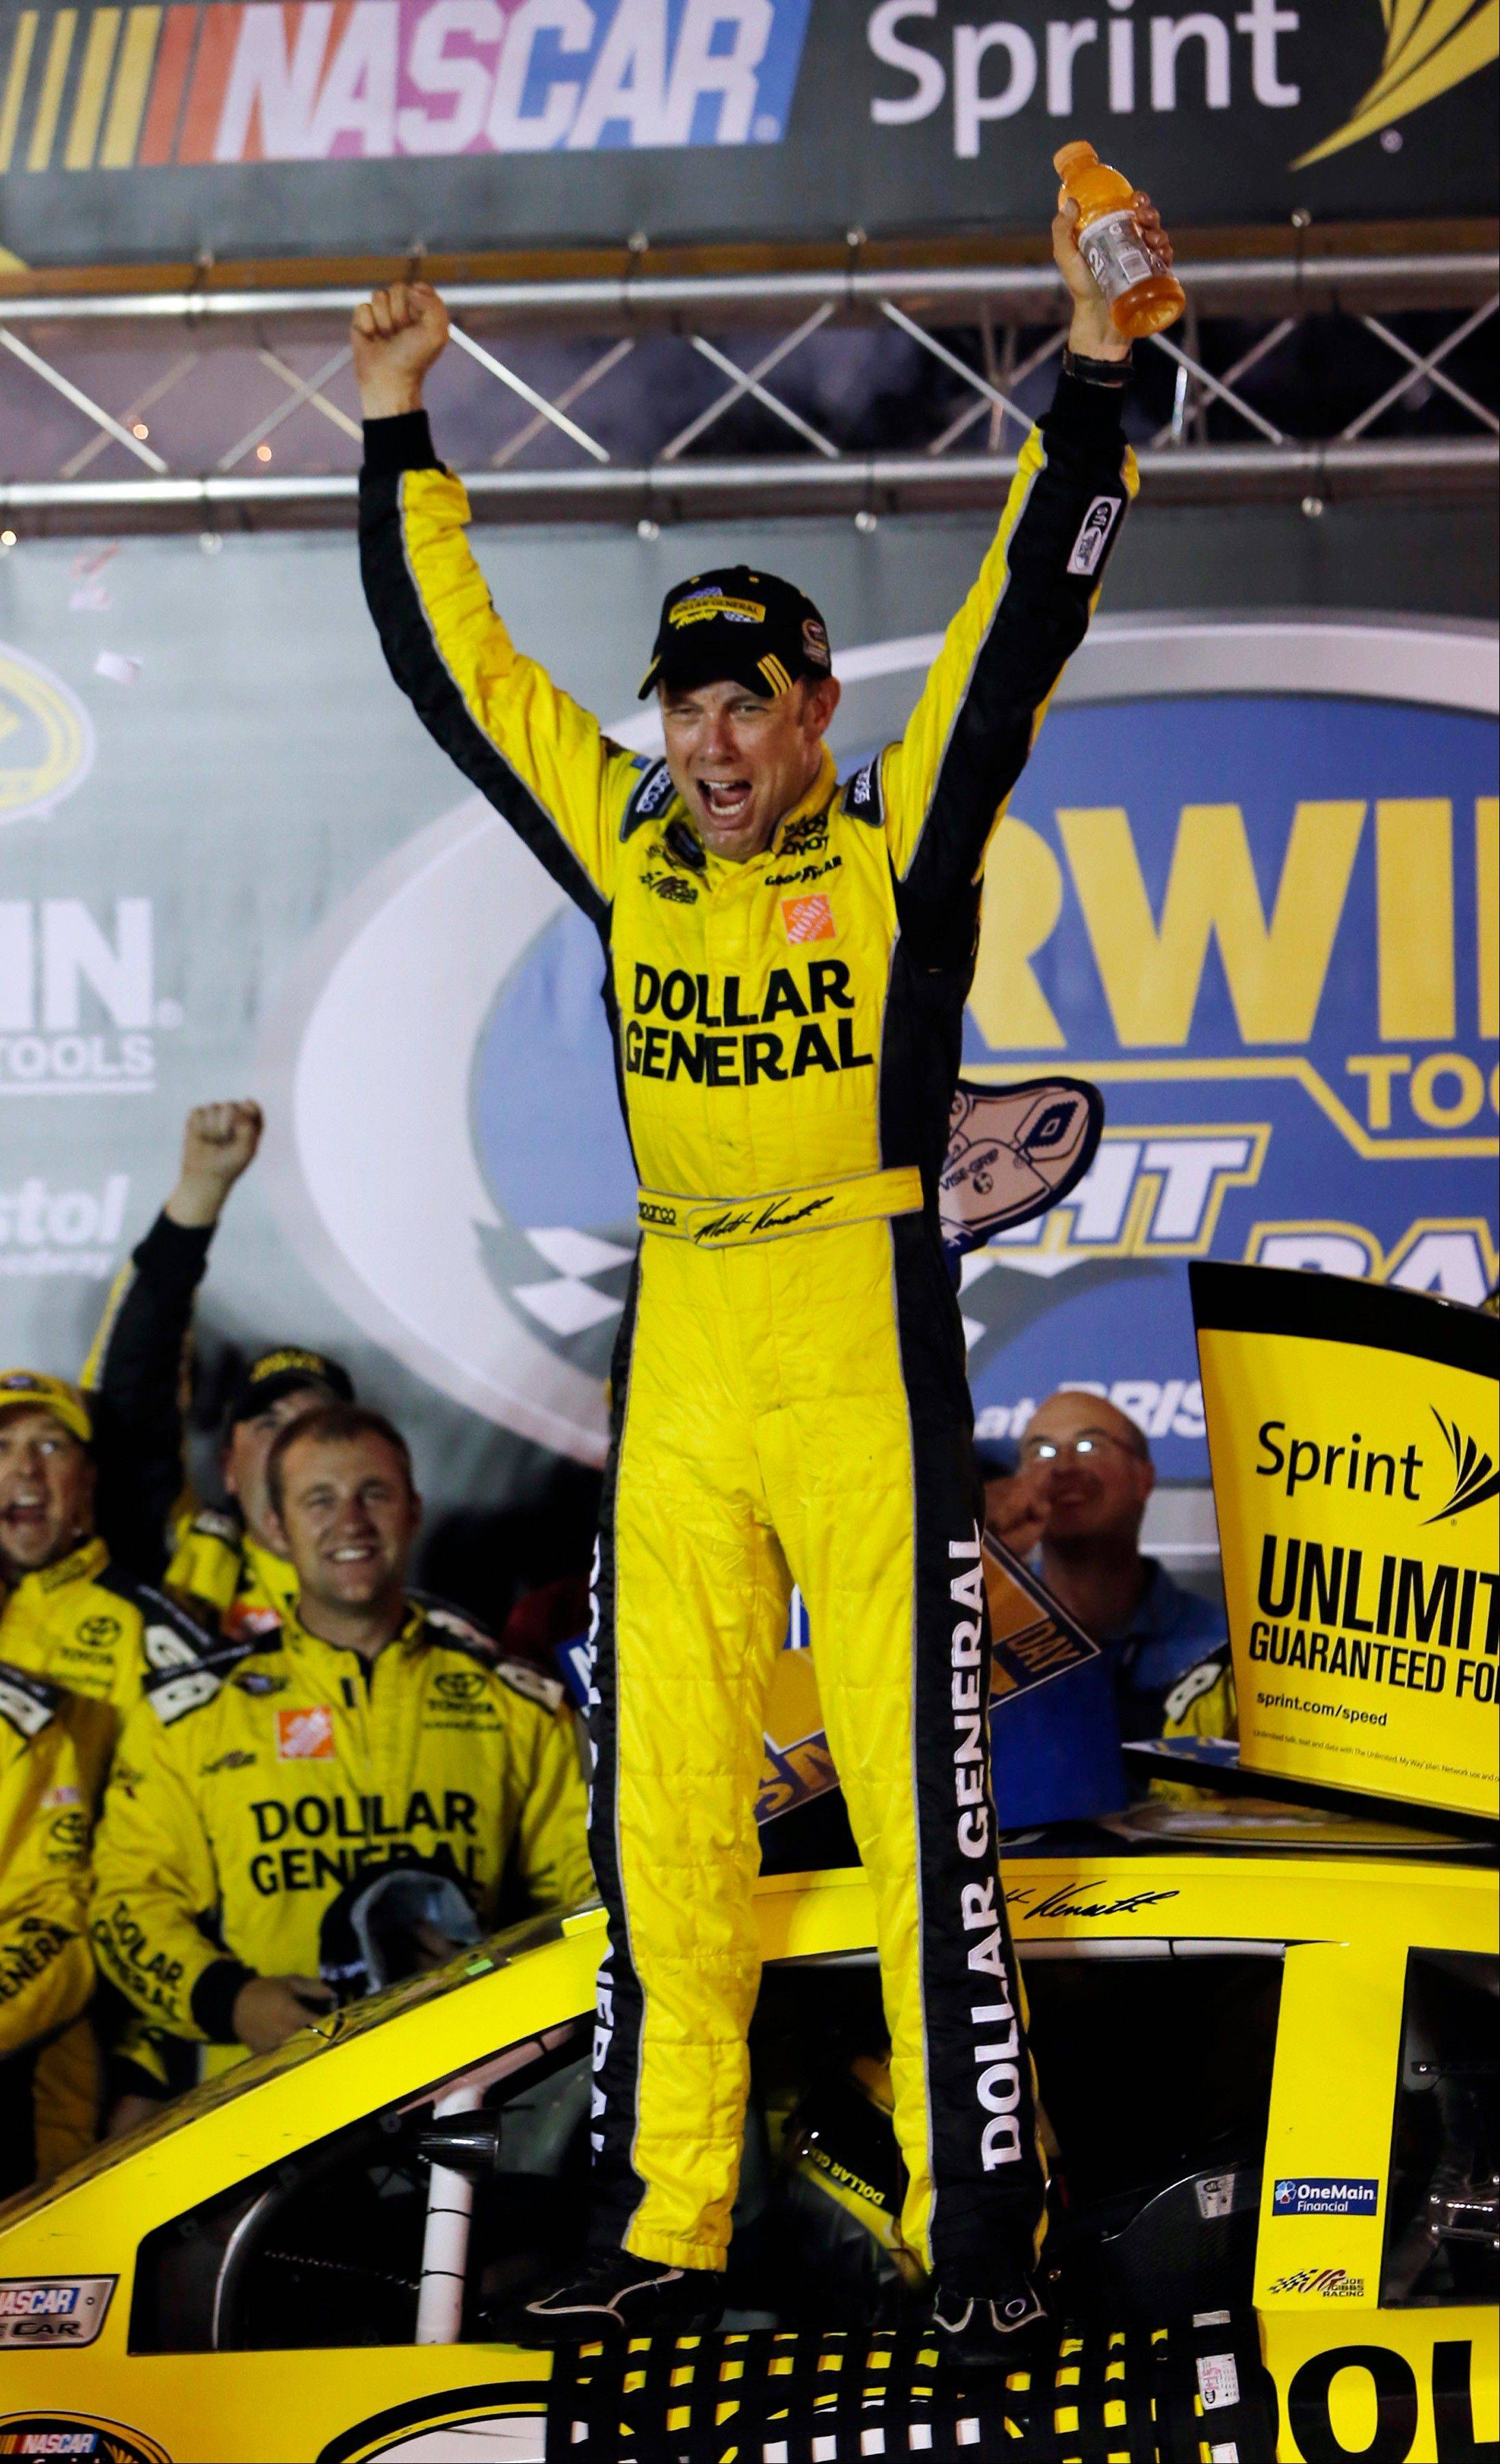 Matt Kenseth celebrates after winning the NASCAR Sprint Cup Series race Saturday at Bristol.